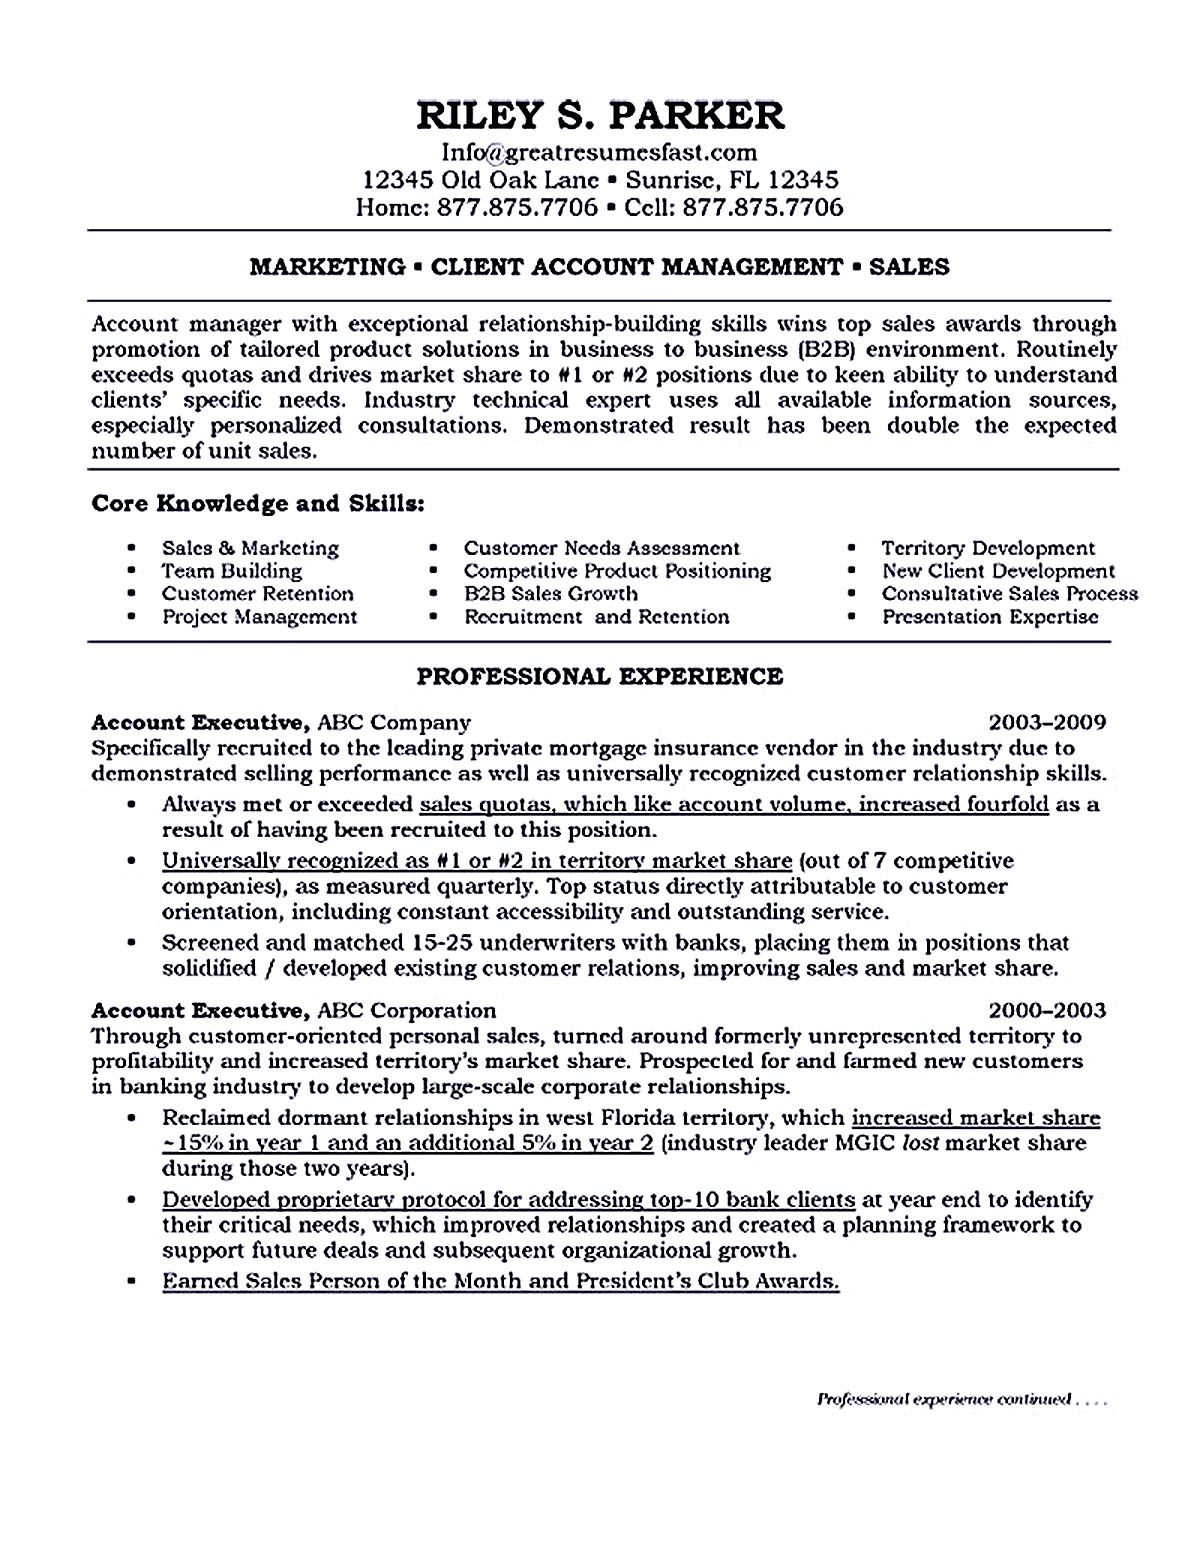 Resume Format For Accounts Manager Account Manager Resume Shows Your Professionalism In The